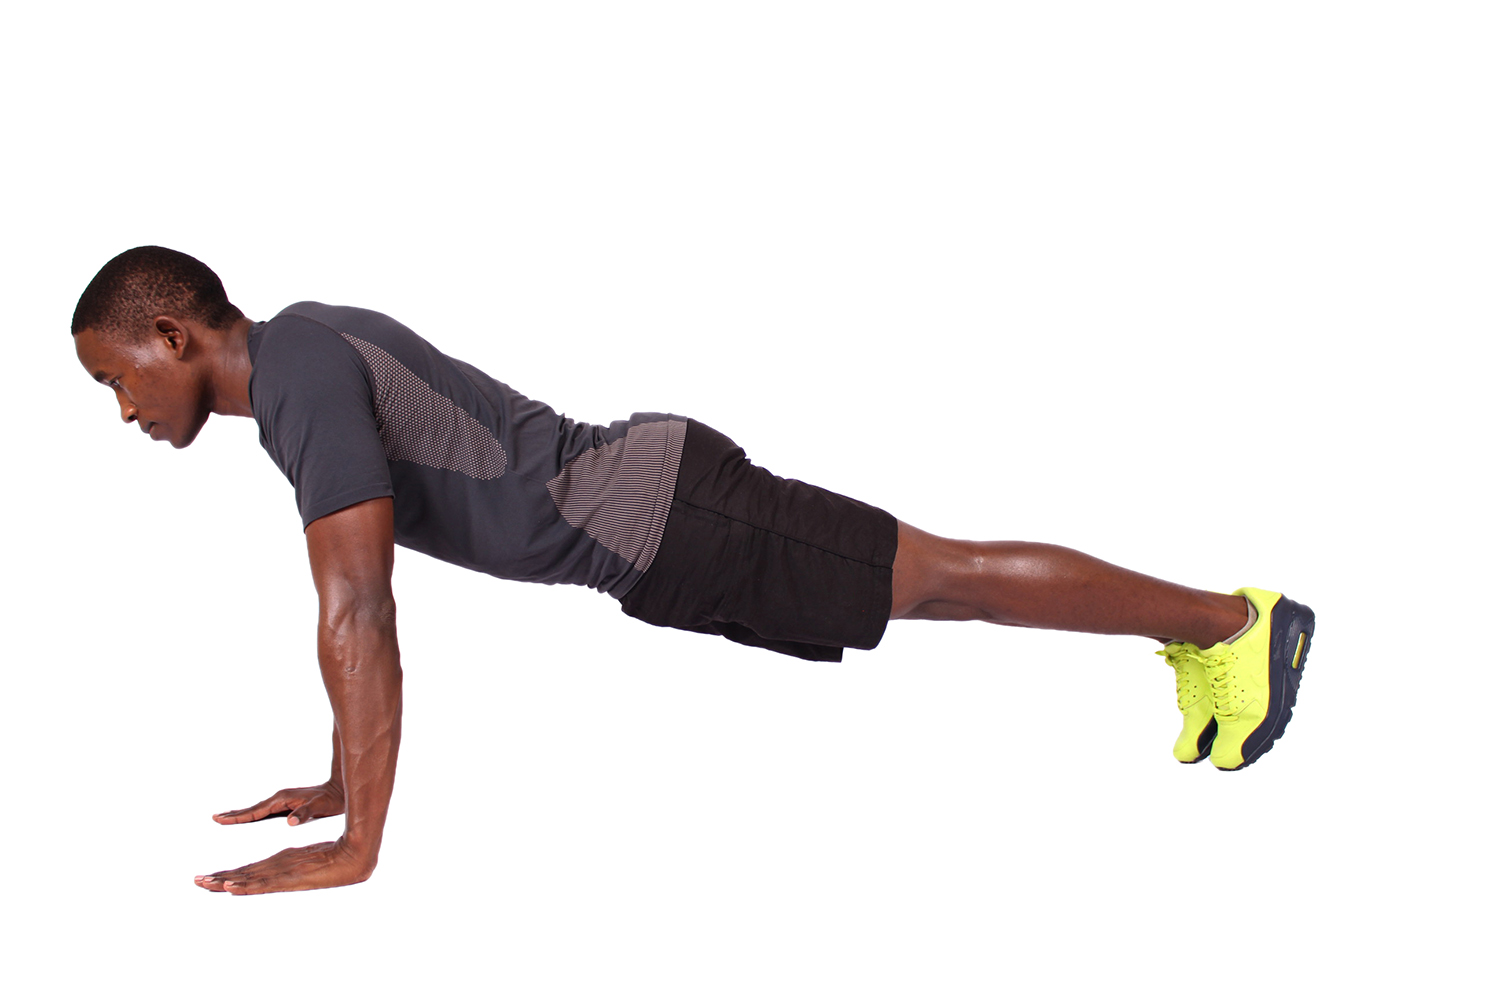 Black man doing push ups in straight arm plank position